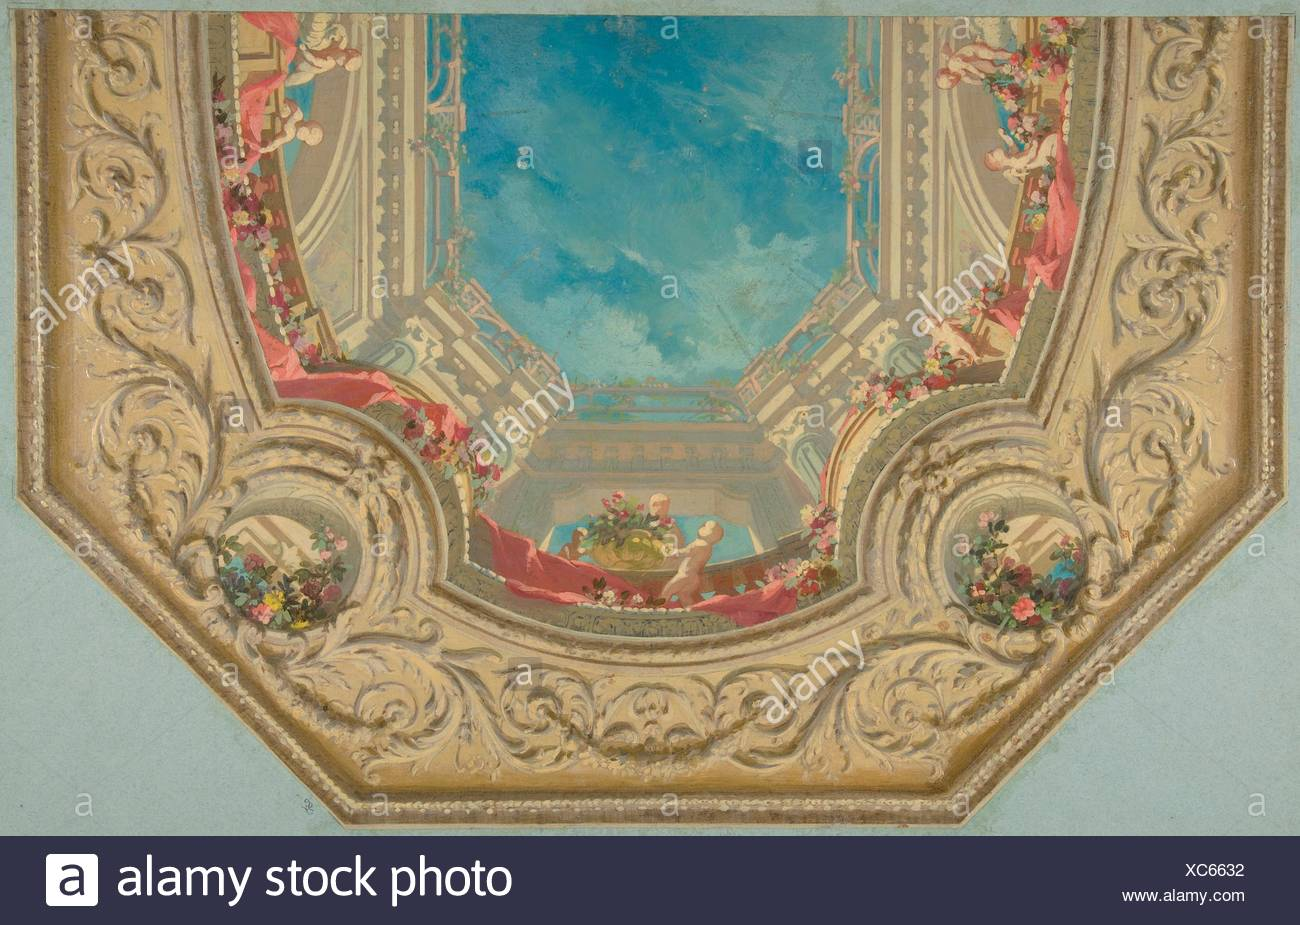 Design for Octagonal Ceiling in the Pless House, Berlin. Artist: Jules-Edmond-Charles Lachaise (French, died 1897); Artist: Eugène-Pierre Gourdet - Stock Image